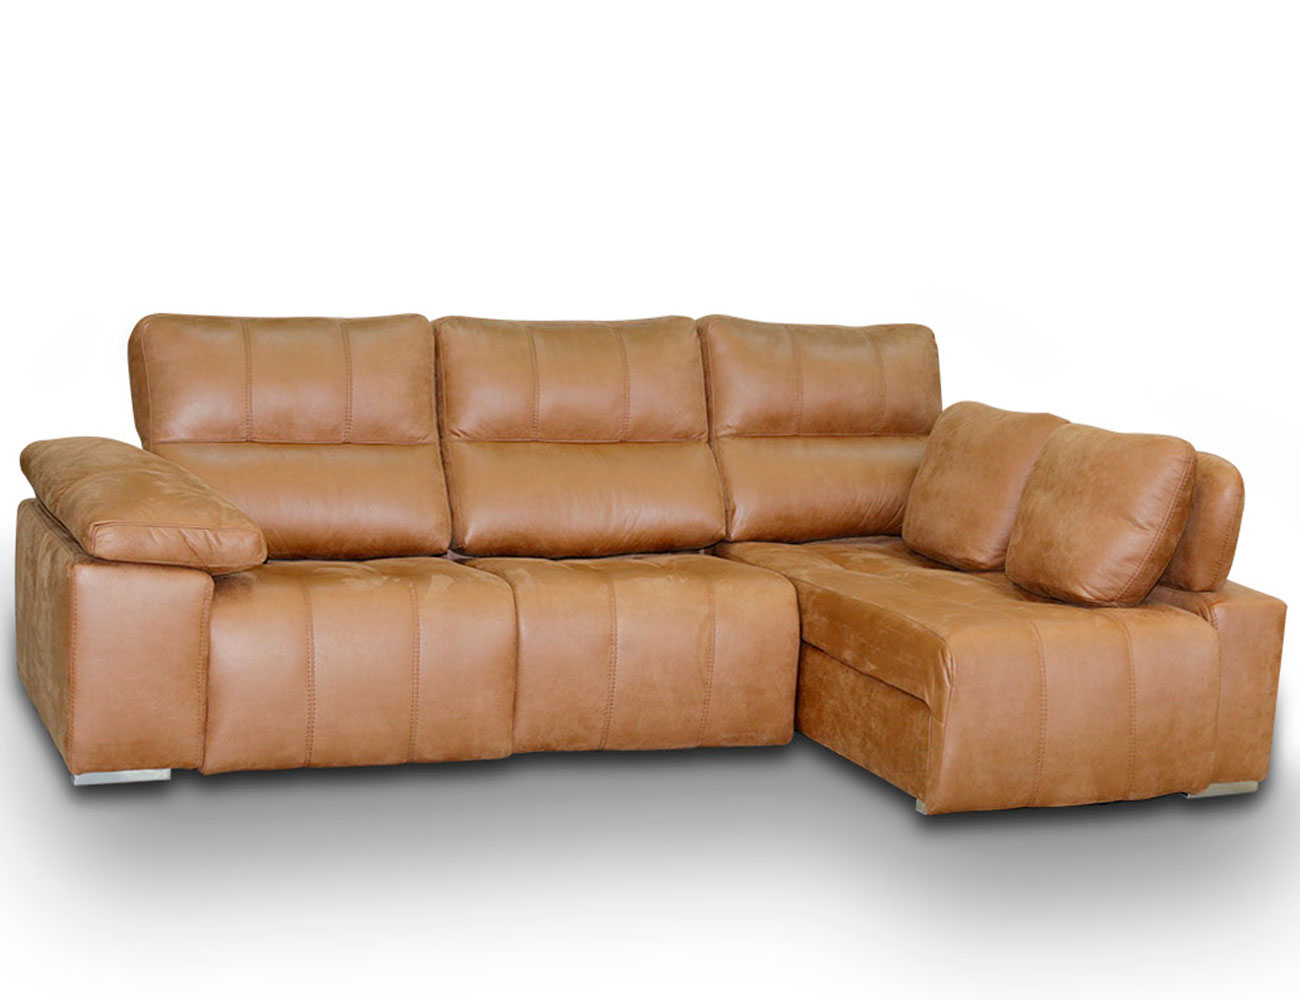 Sofa chaiselongue relax 2 motores anti manchas50